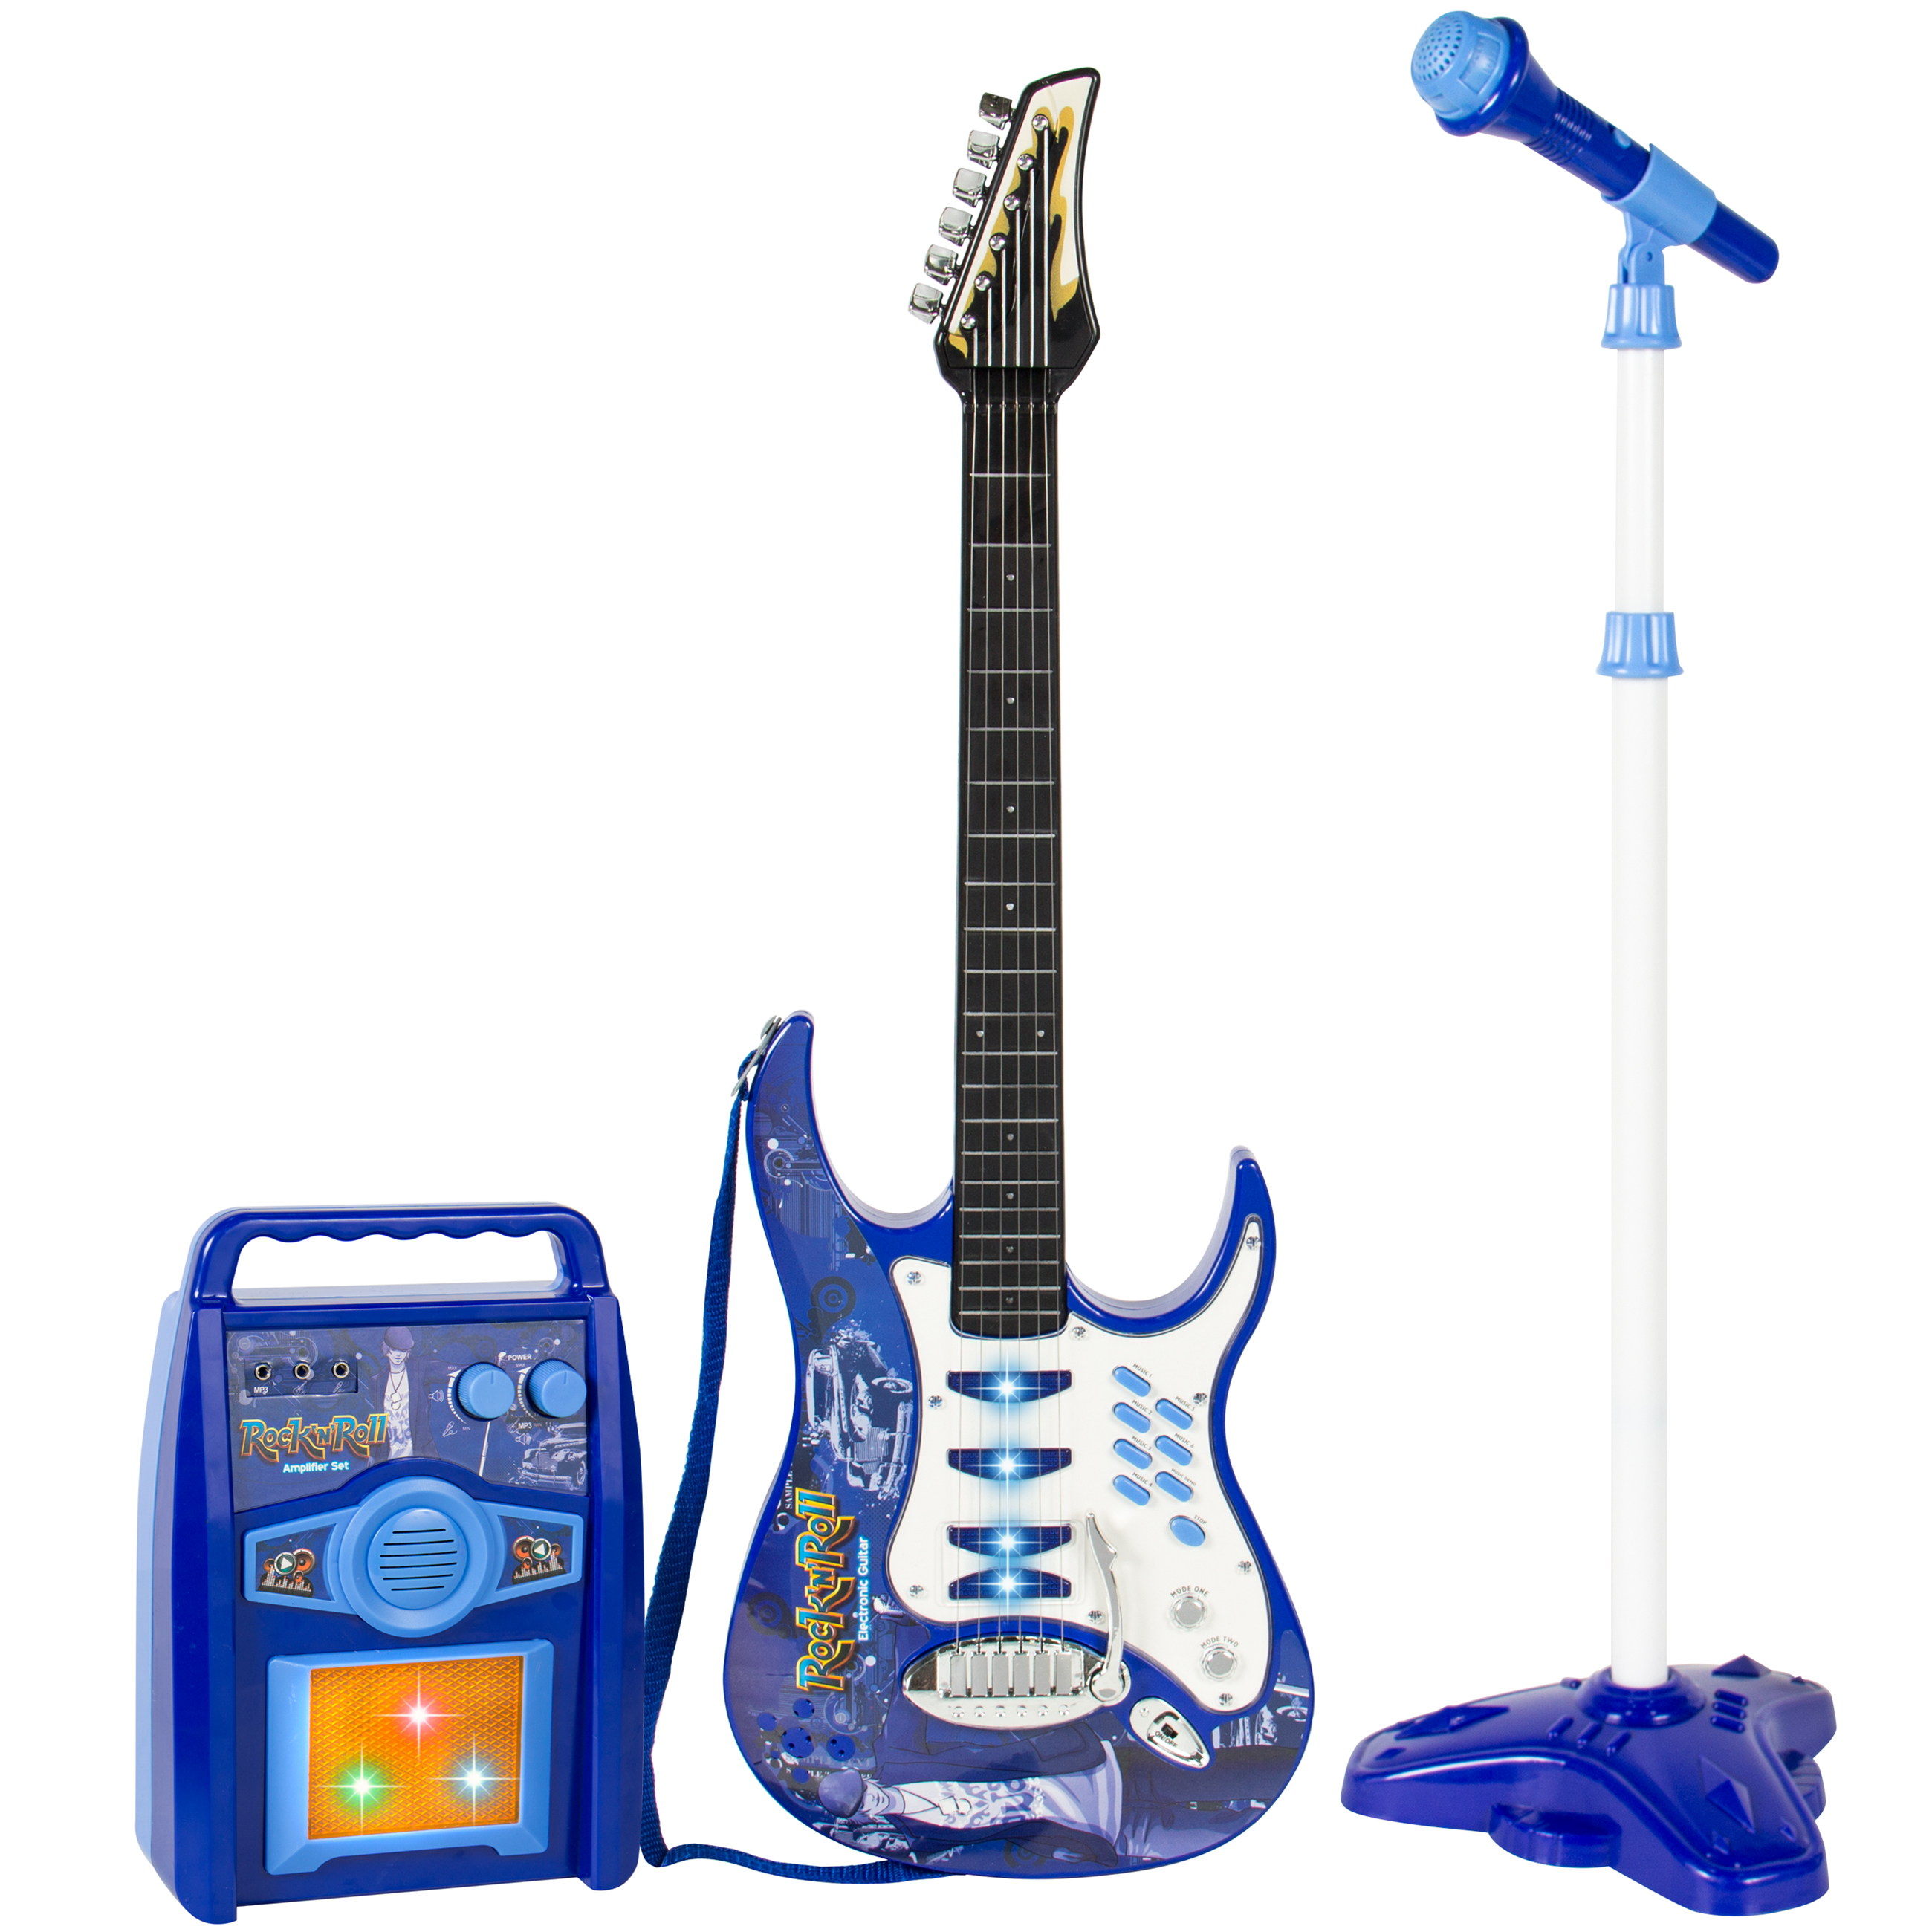 Best Choice Products Kids Electric Guitar Play Set W  MP3 Player, Microphone, Amp Children... by Best Choice Products